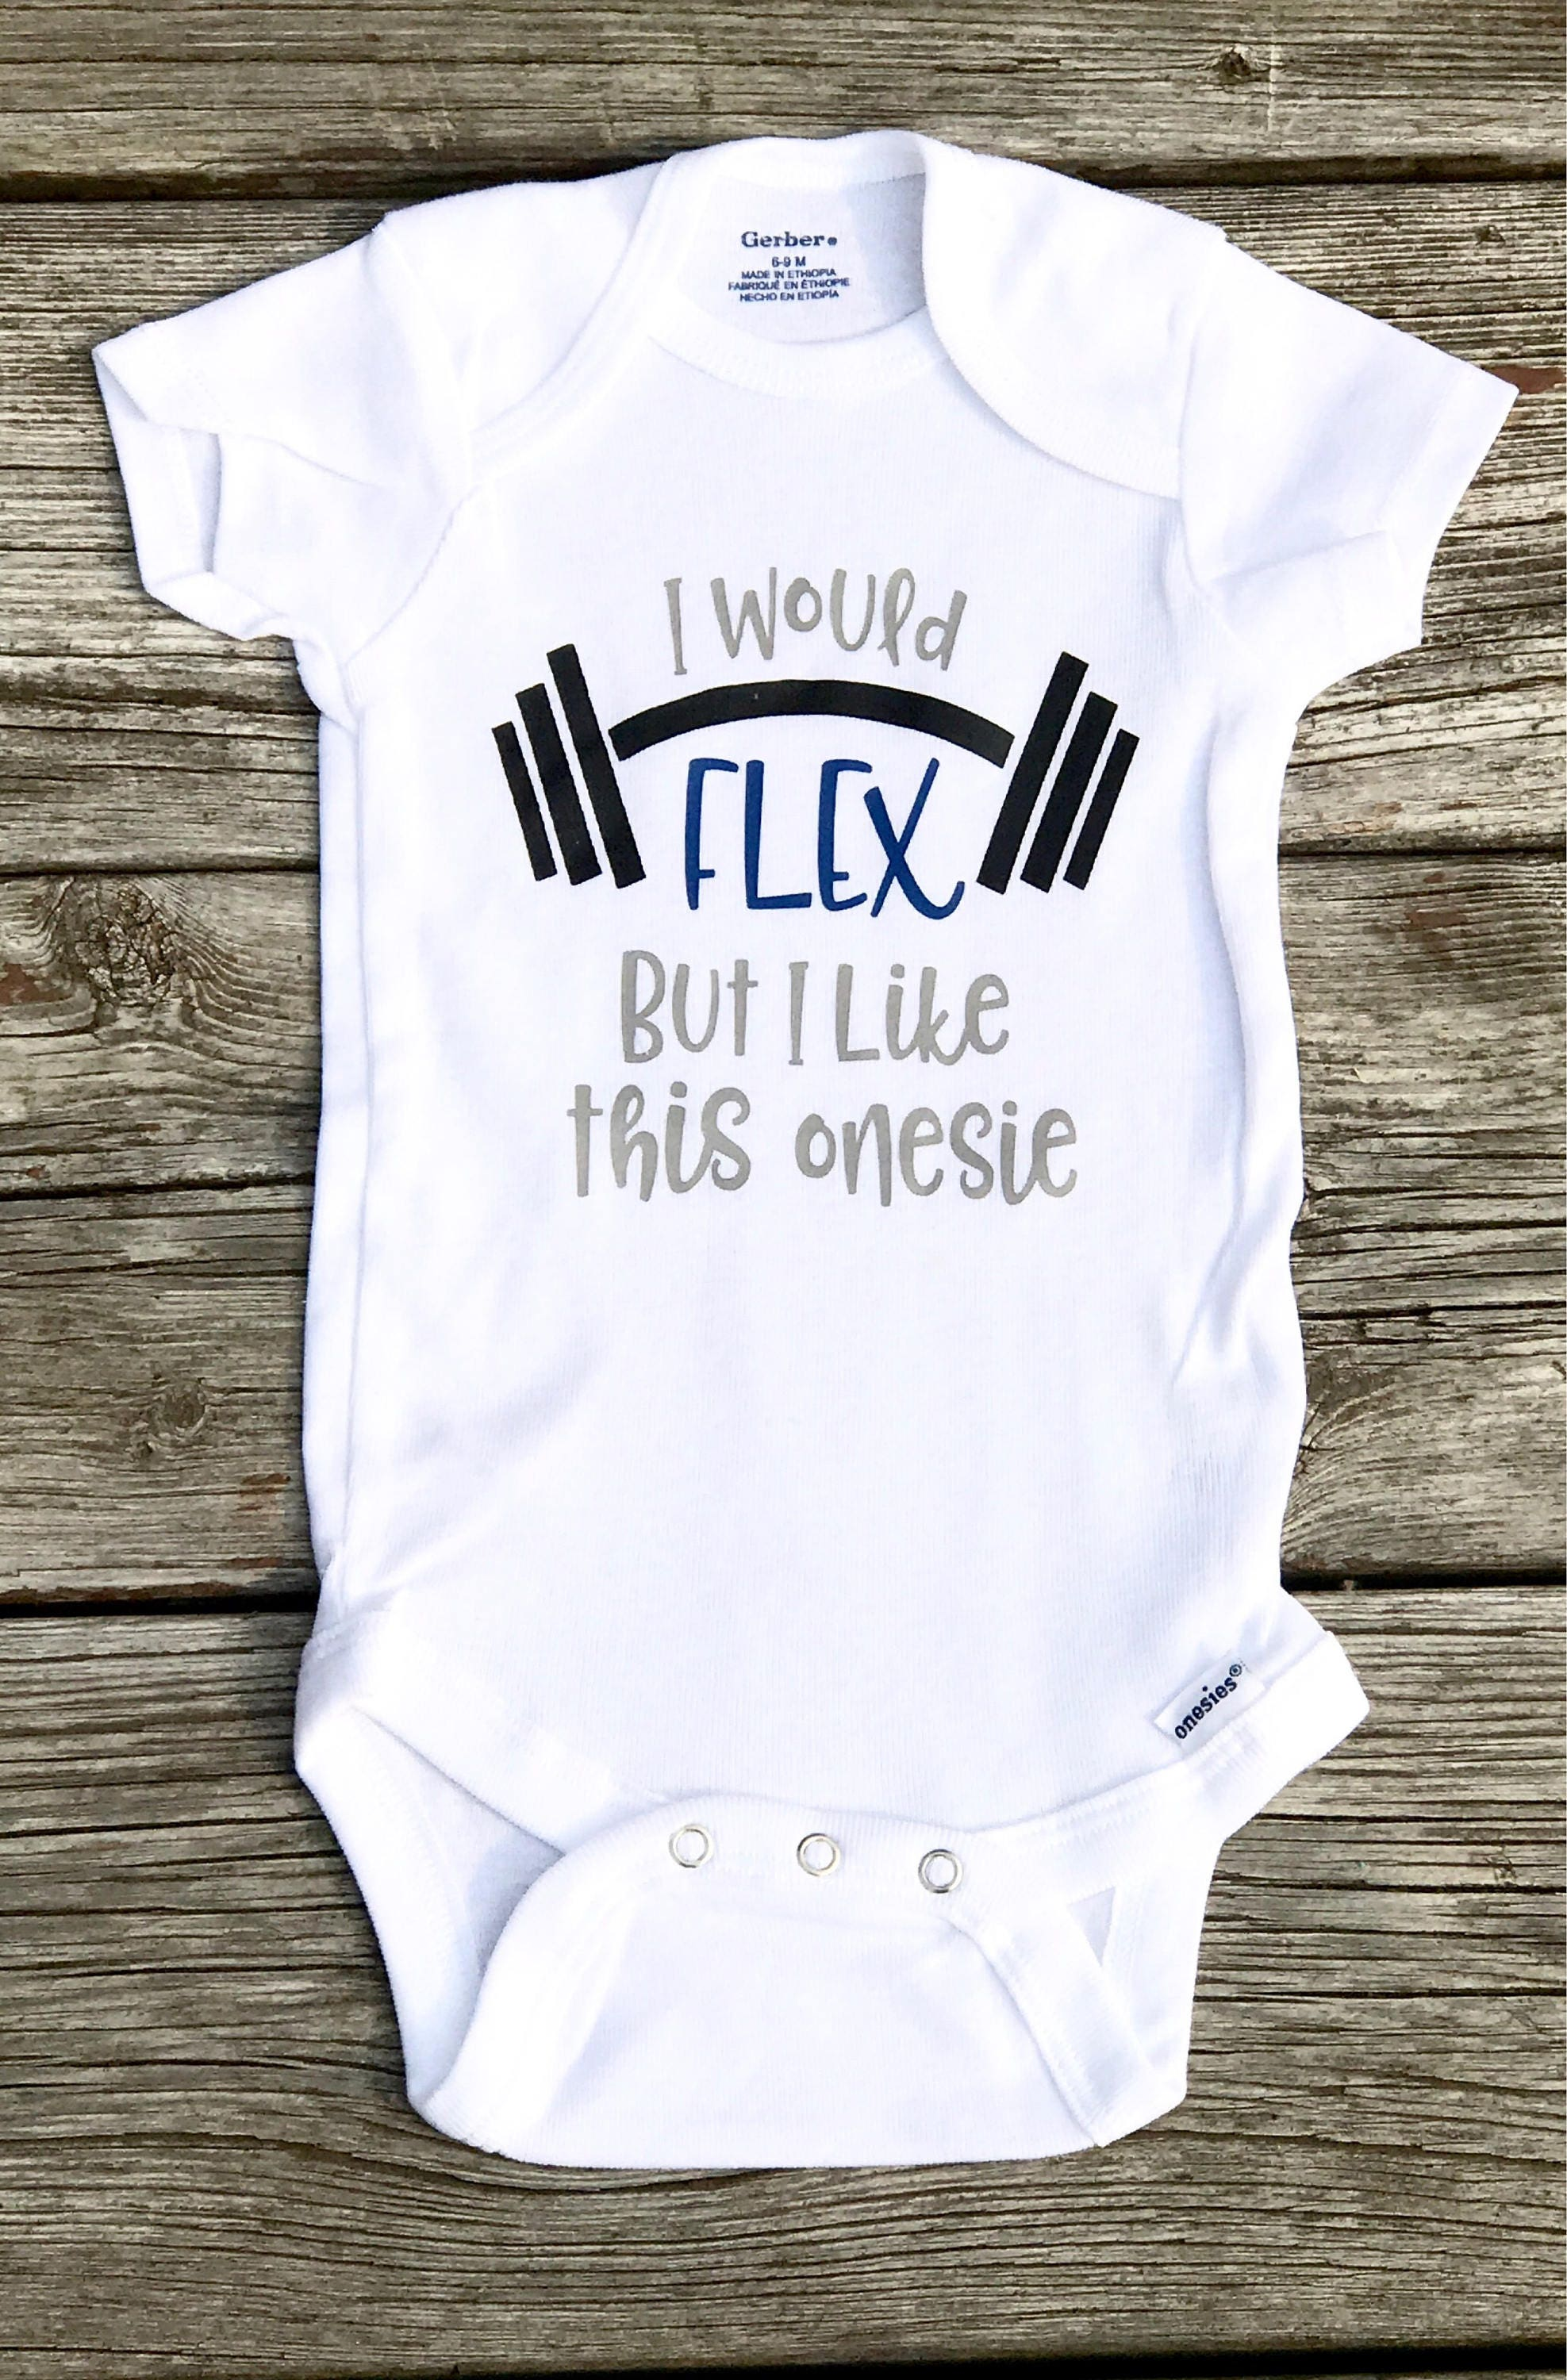 I would flex but i like this onesie Funny shirts